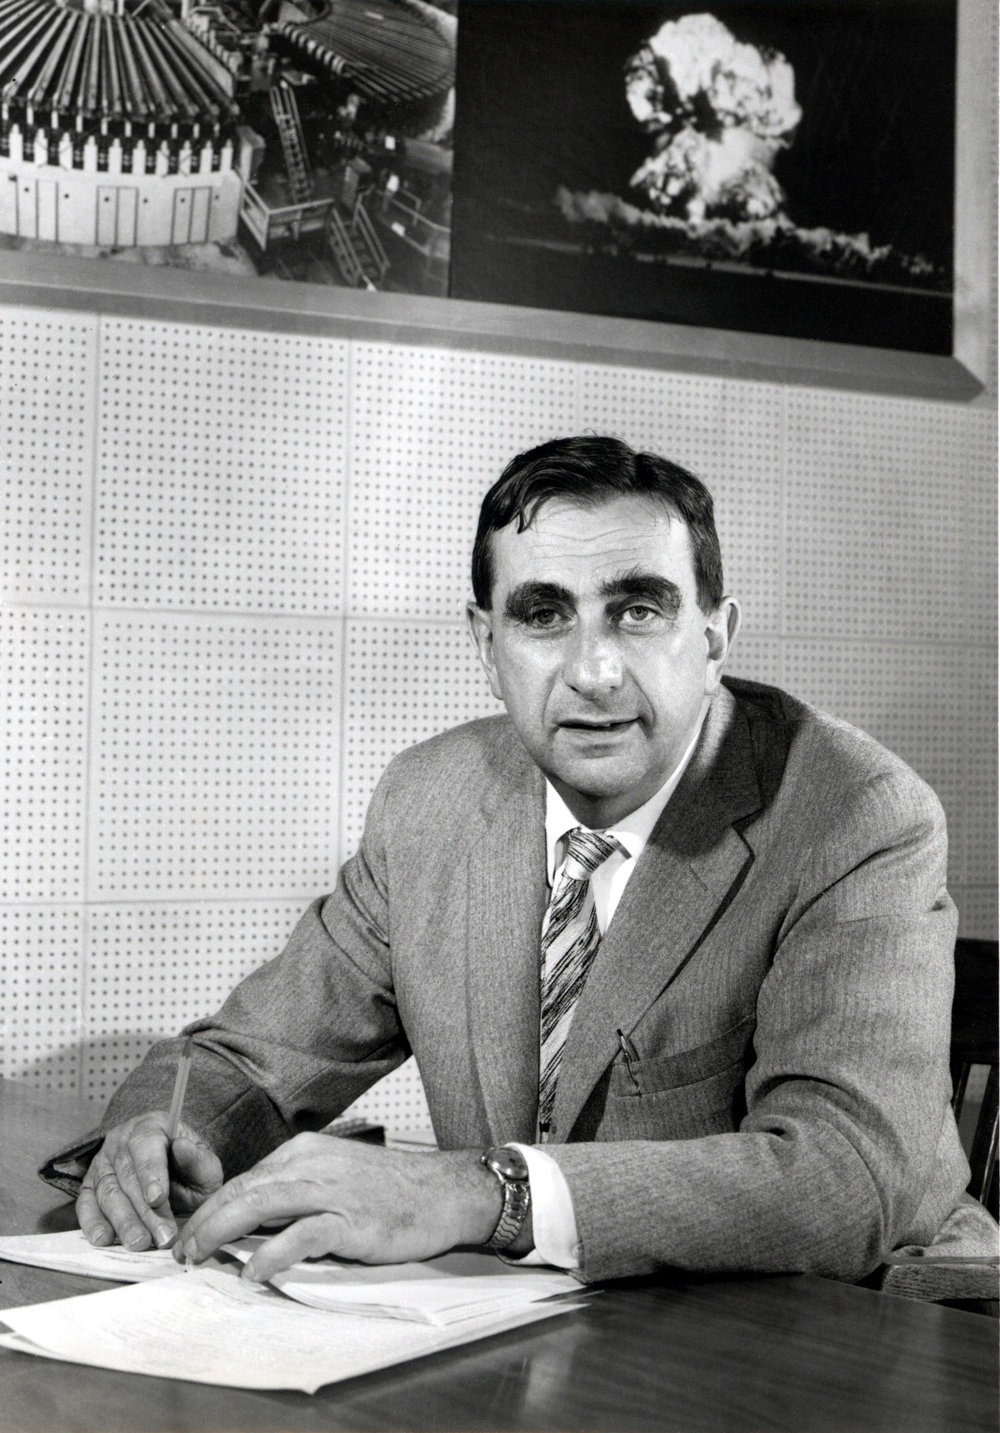 Figure 2. Edward Teller in 1958 during his directorship of Lawrence Livermore National Laboratory, soon after the approval of Project Plowshare.